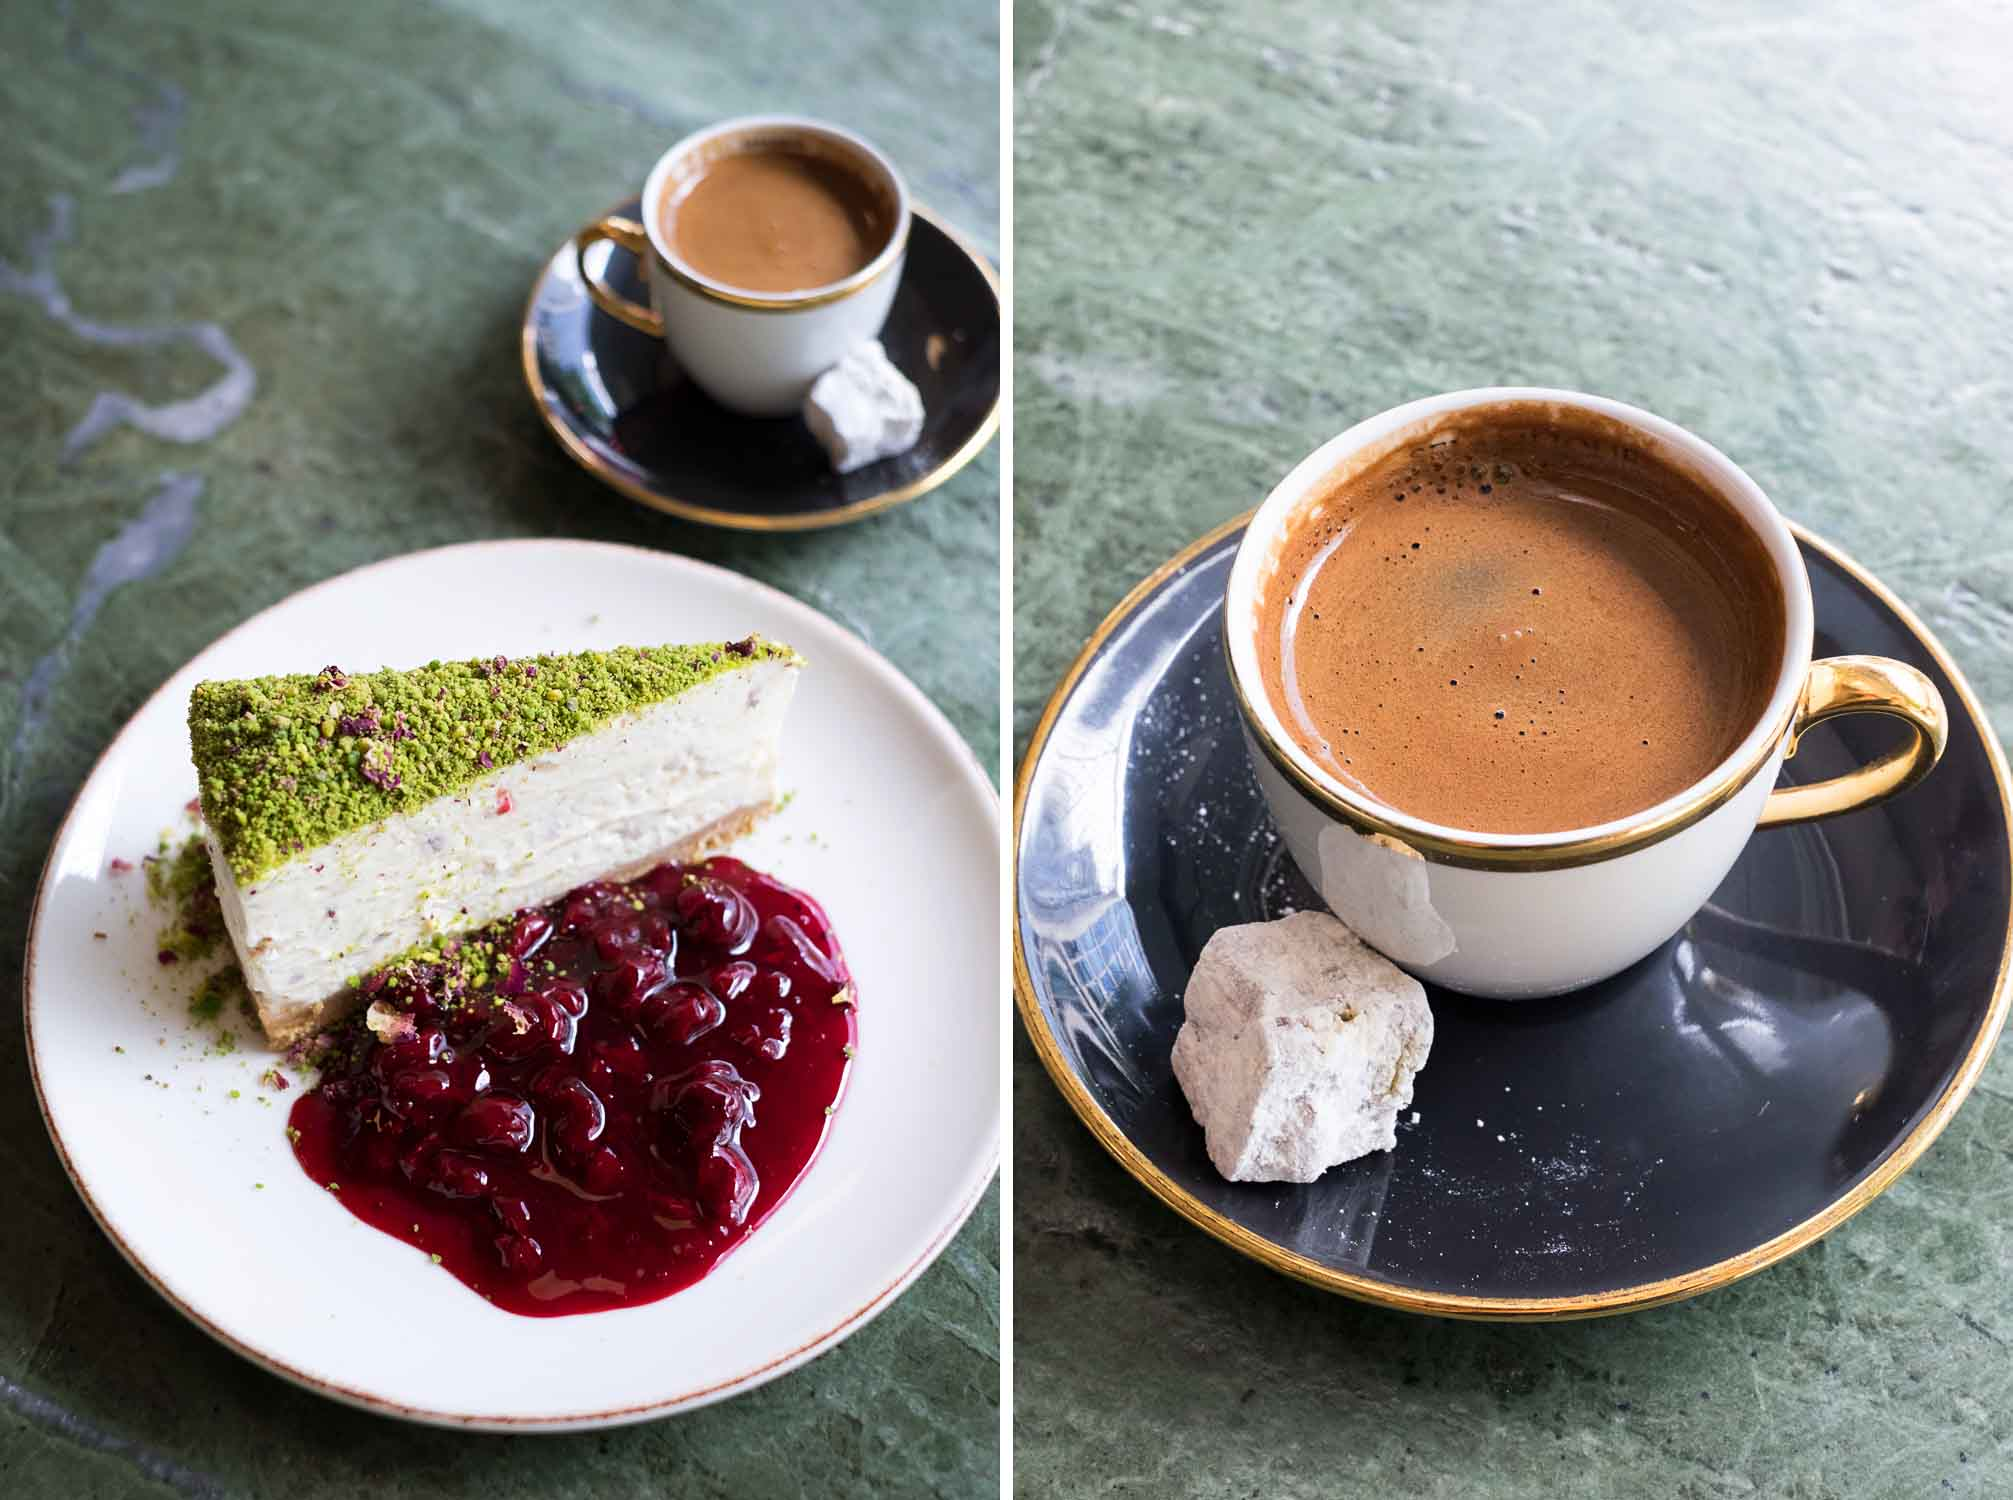 Turkish coffee and Pistachio cheesecake - From the streets of Istanbul to London: an authentic Turkish meal at Yosma in Marylebone